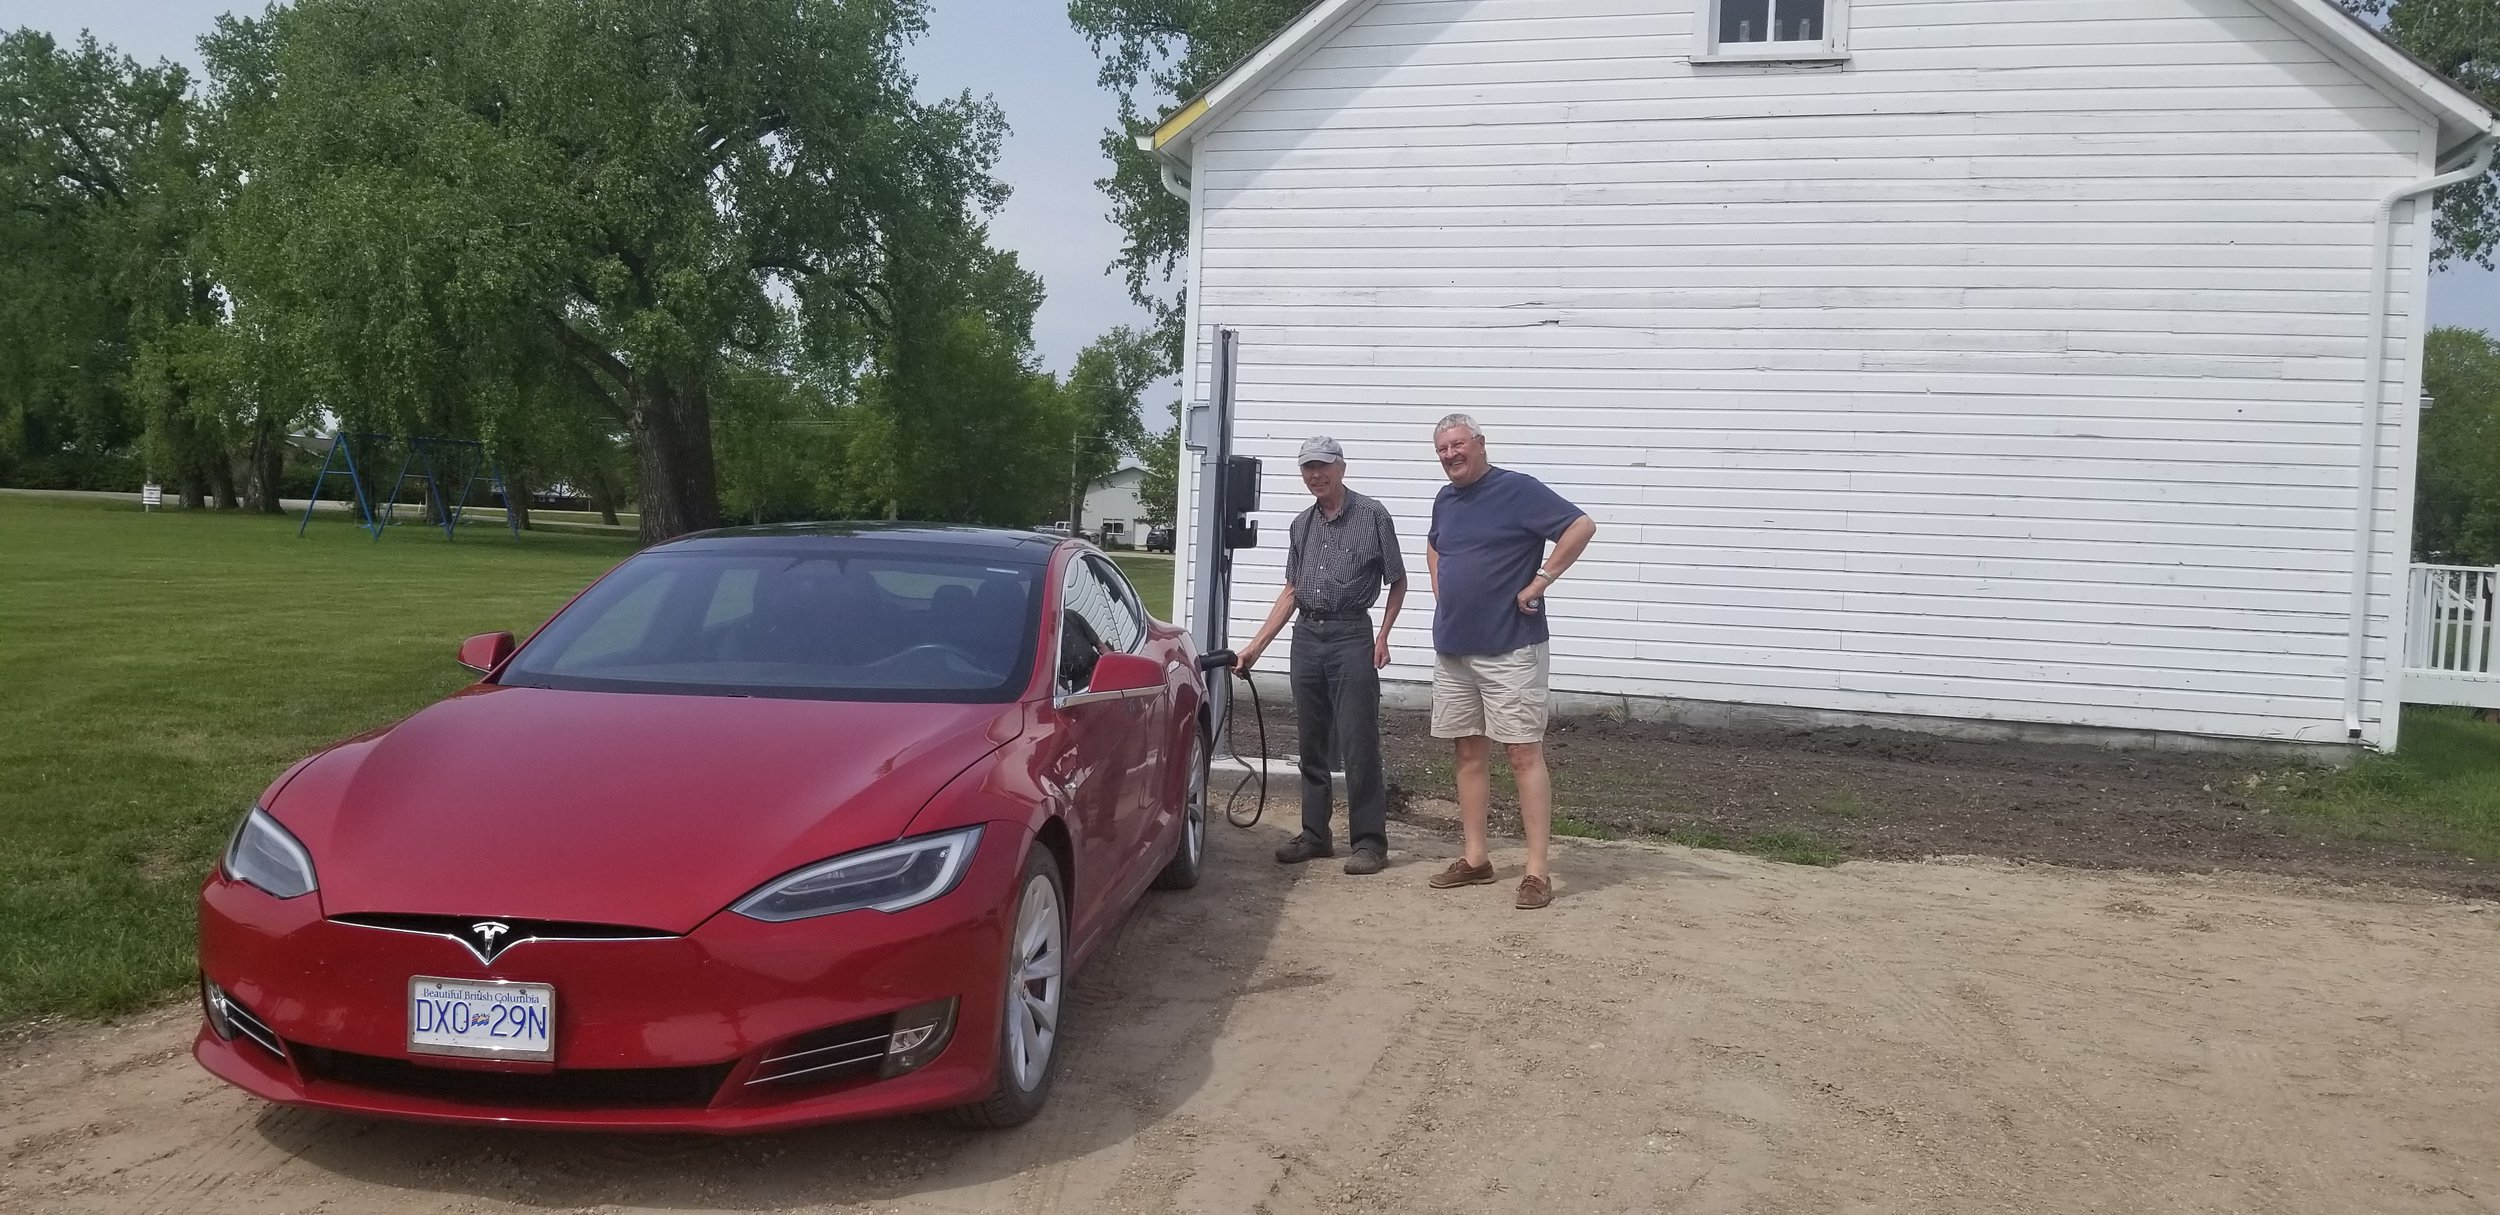 The first charge given to Roy Abrams' (right) electric powered Tesla vehicle by Ray Hamm (left), a member of the Neubergthal Heritage Foundation board, and main contact in the setting up of this station.